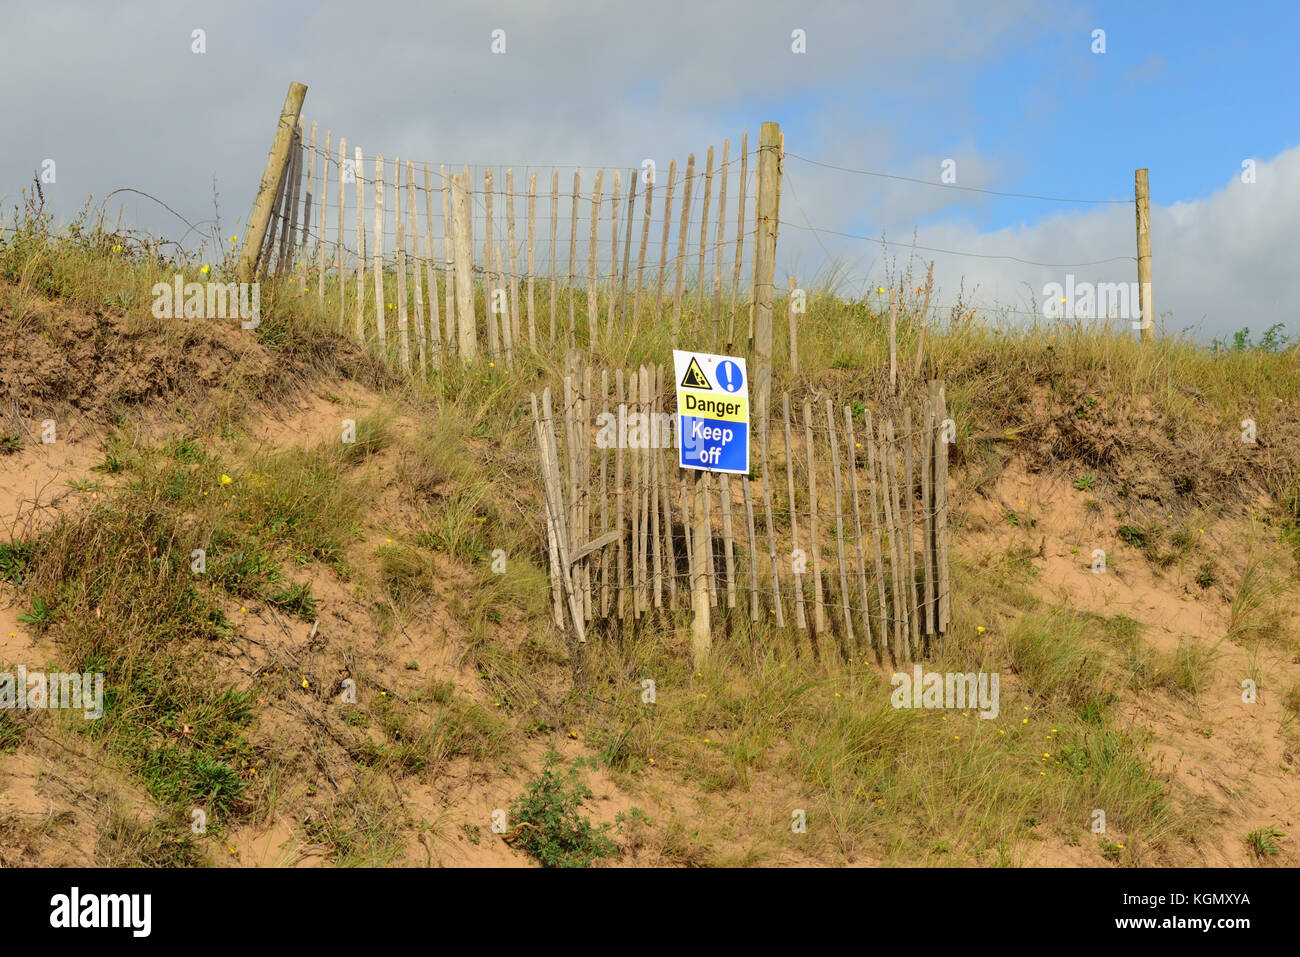 Warning notice about a fenced off hazard in the sand dunes. - Stock Image